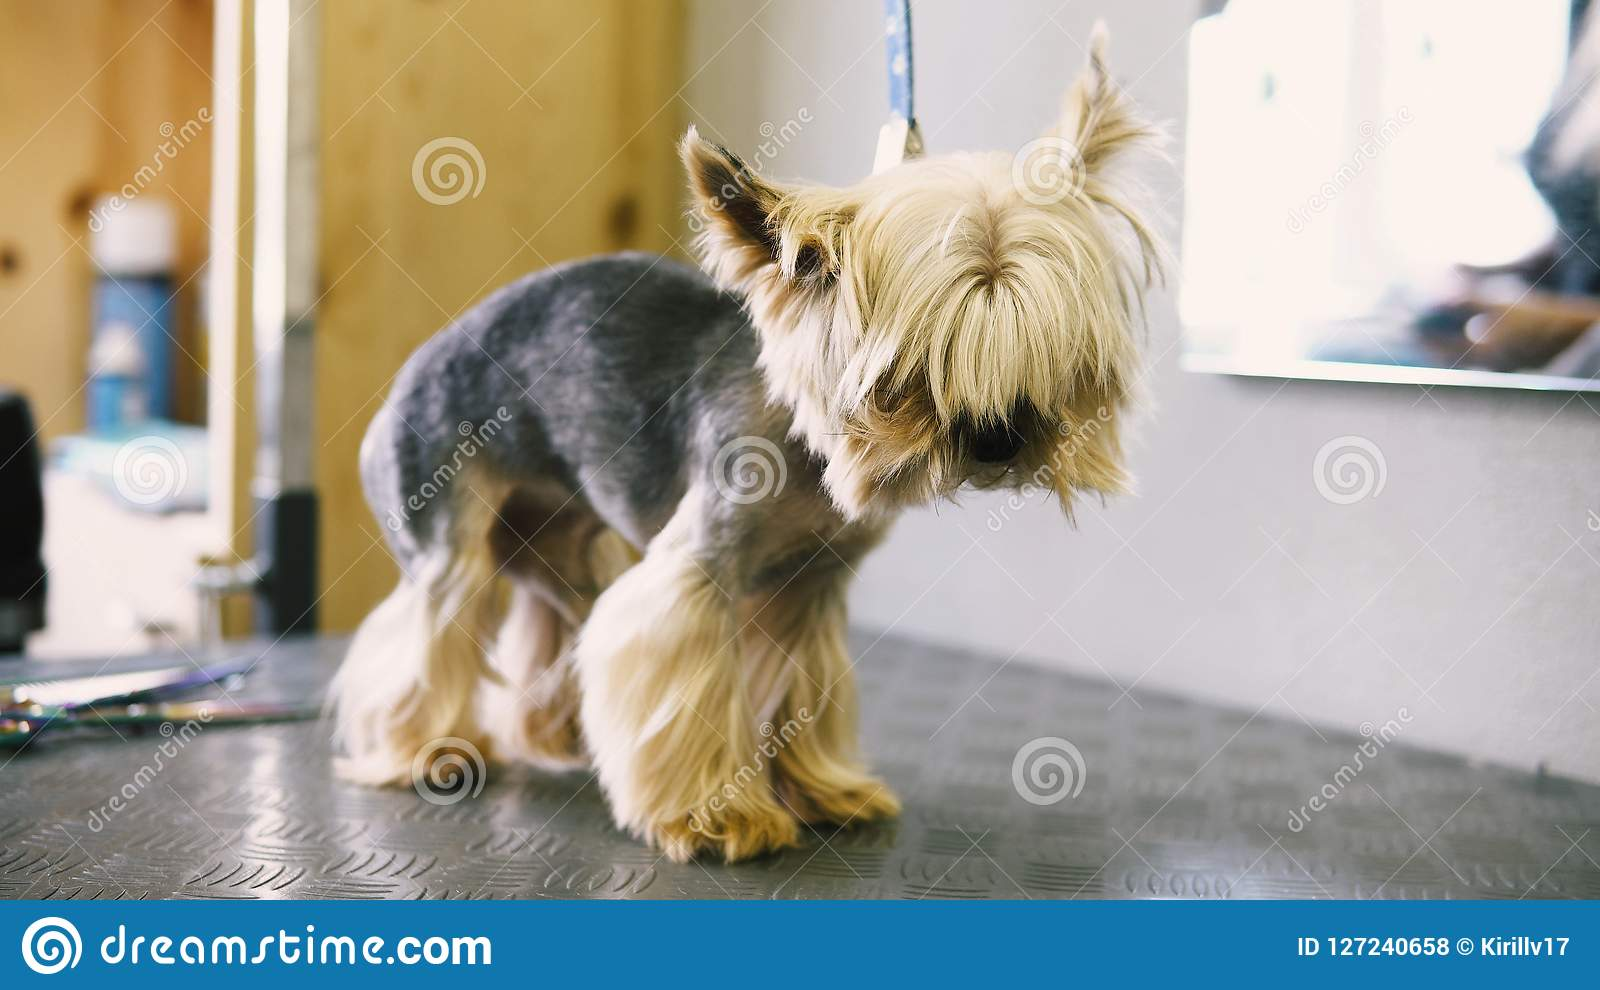 Dog Haircut In The Salon Care For Yorkshire Terriers Stock Photo